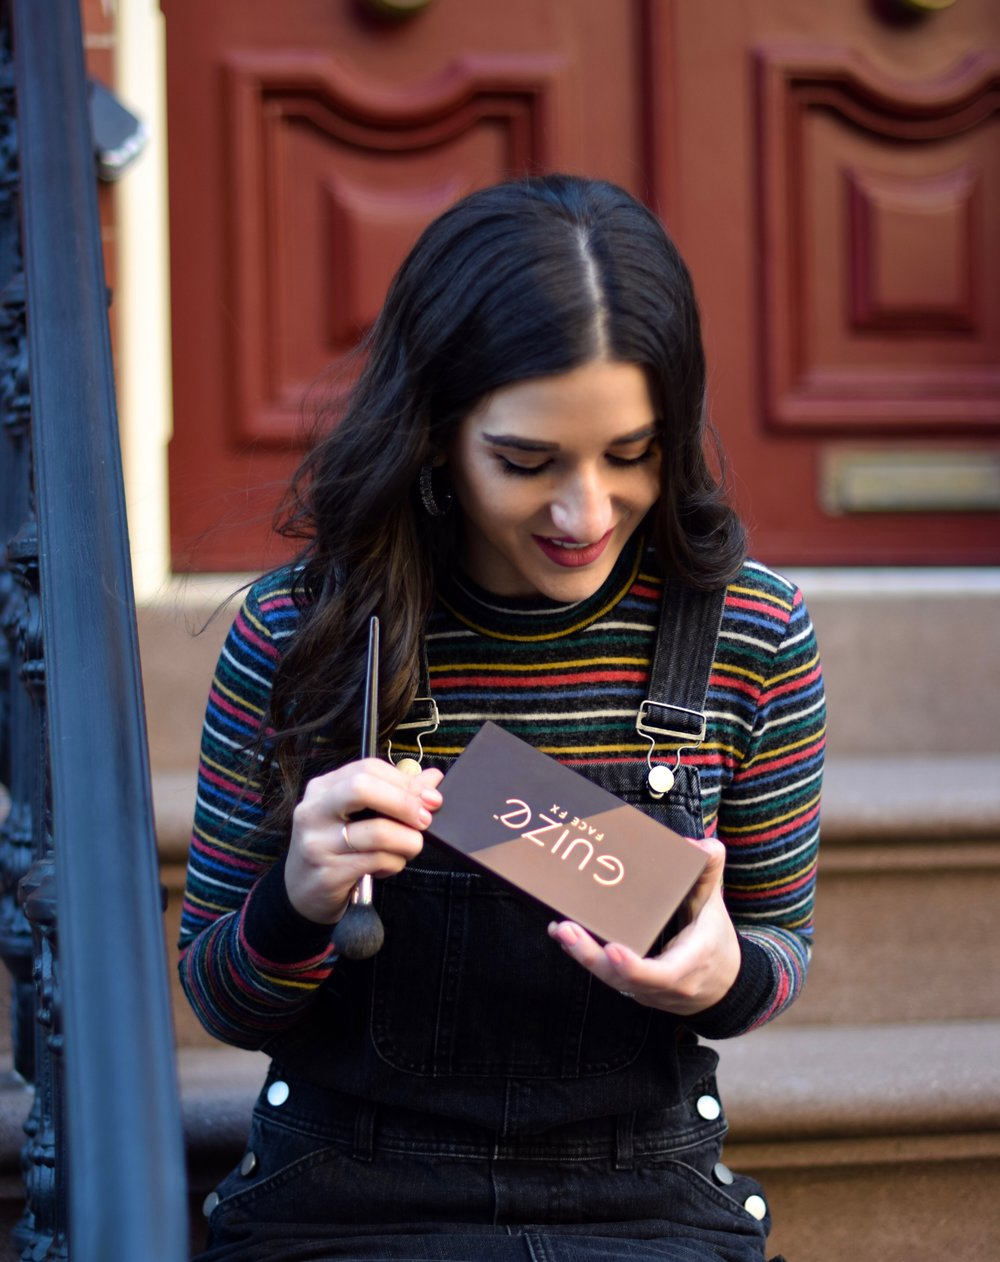 Guize Face FX Contour Palette Review Esther Santer Fashion Blog NYC Street Style Blogger Outfit OOTD Trendy Makeup Beauty Product Bronzer Highlighter Powder Brush Shopping Value $40 Radiant Glow Skin Beautiful Shades New York City Company Brand Collab.jpg